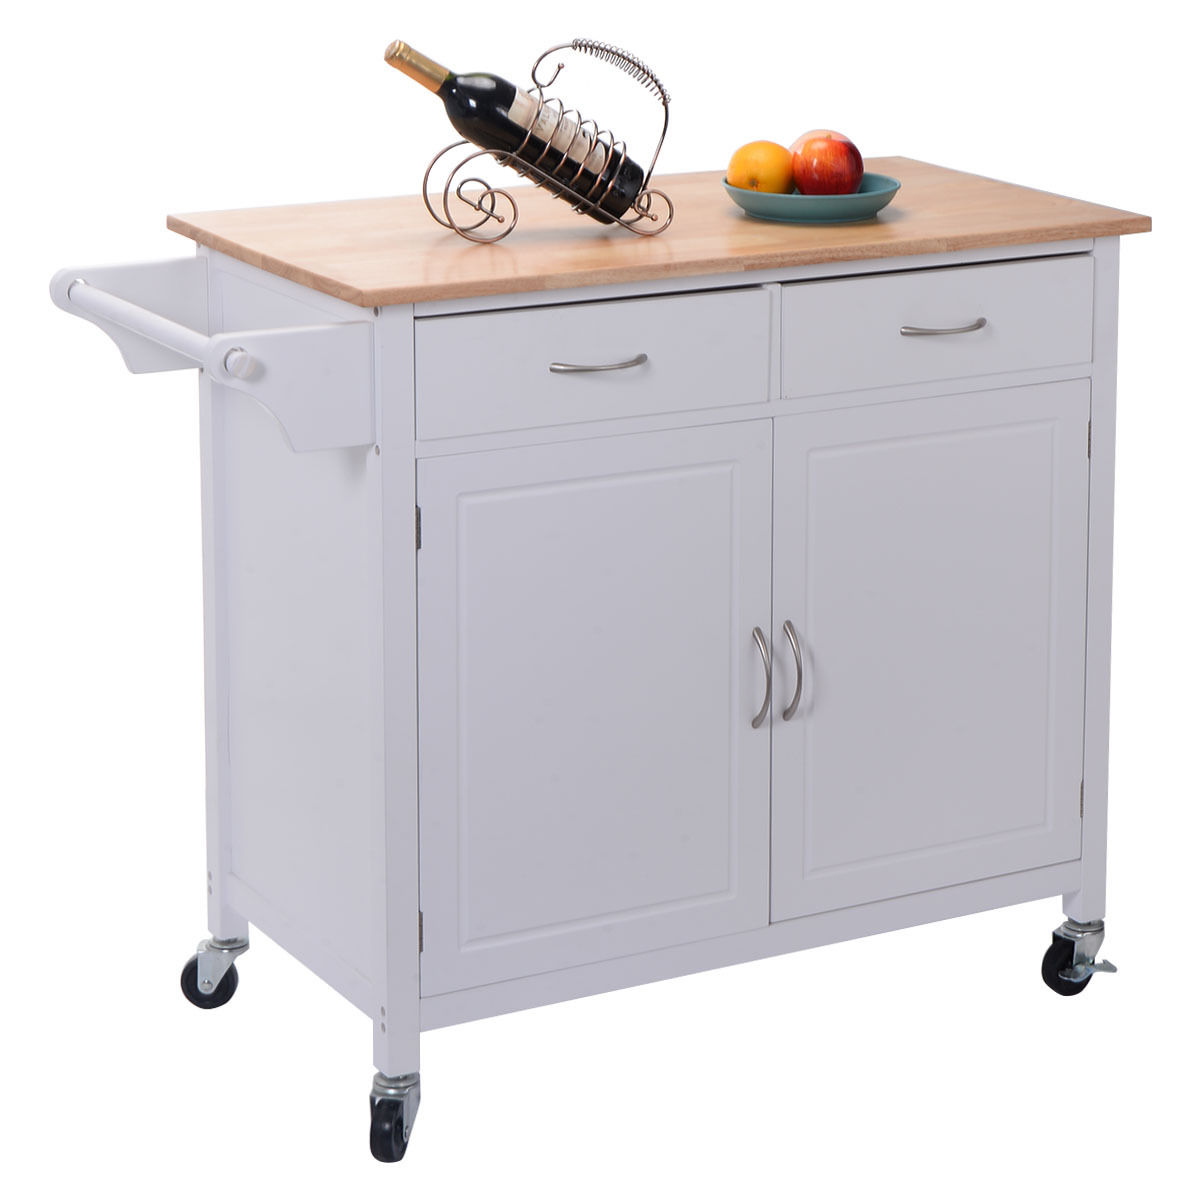 kitchen cart $150 - $200 HAJTOFB